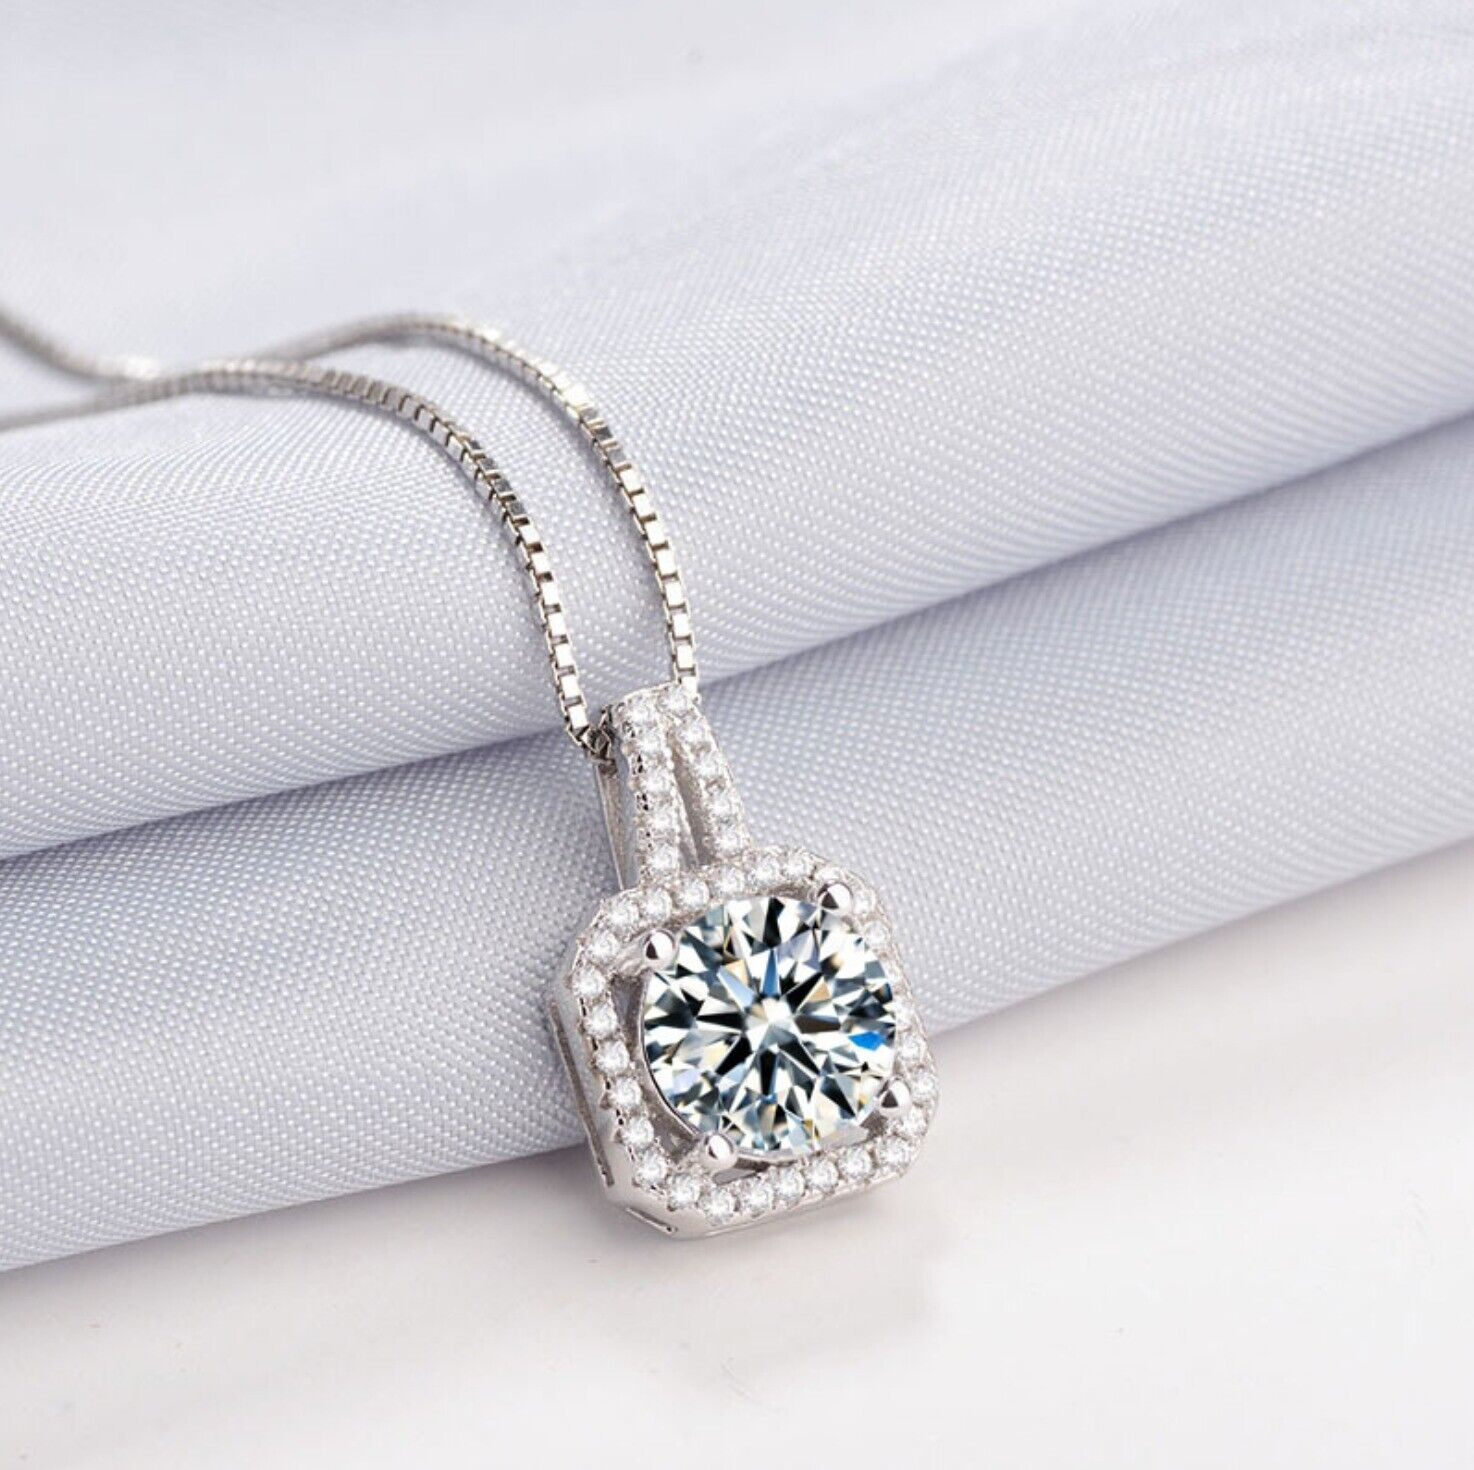 Jewellery - 925 Sterling Silver Crystal Square Stone Pendant Chain Necklace Womens Jewellery